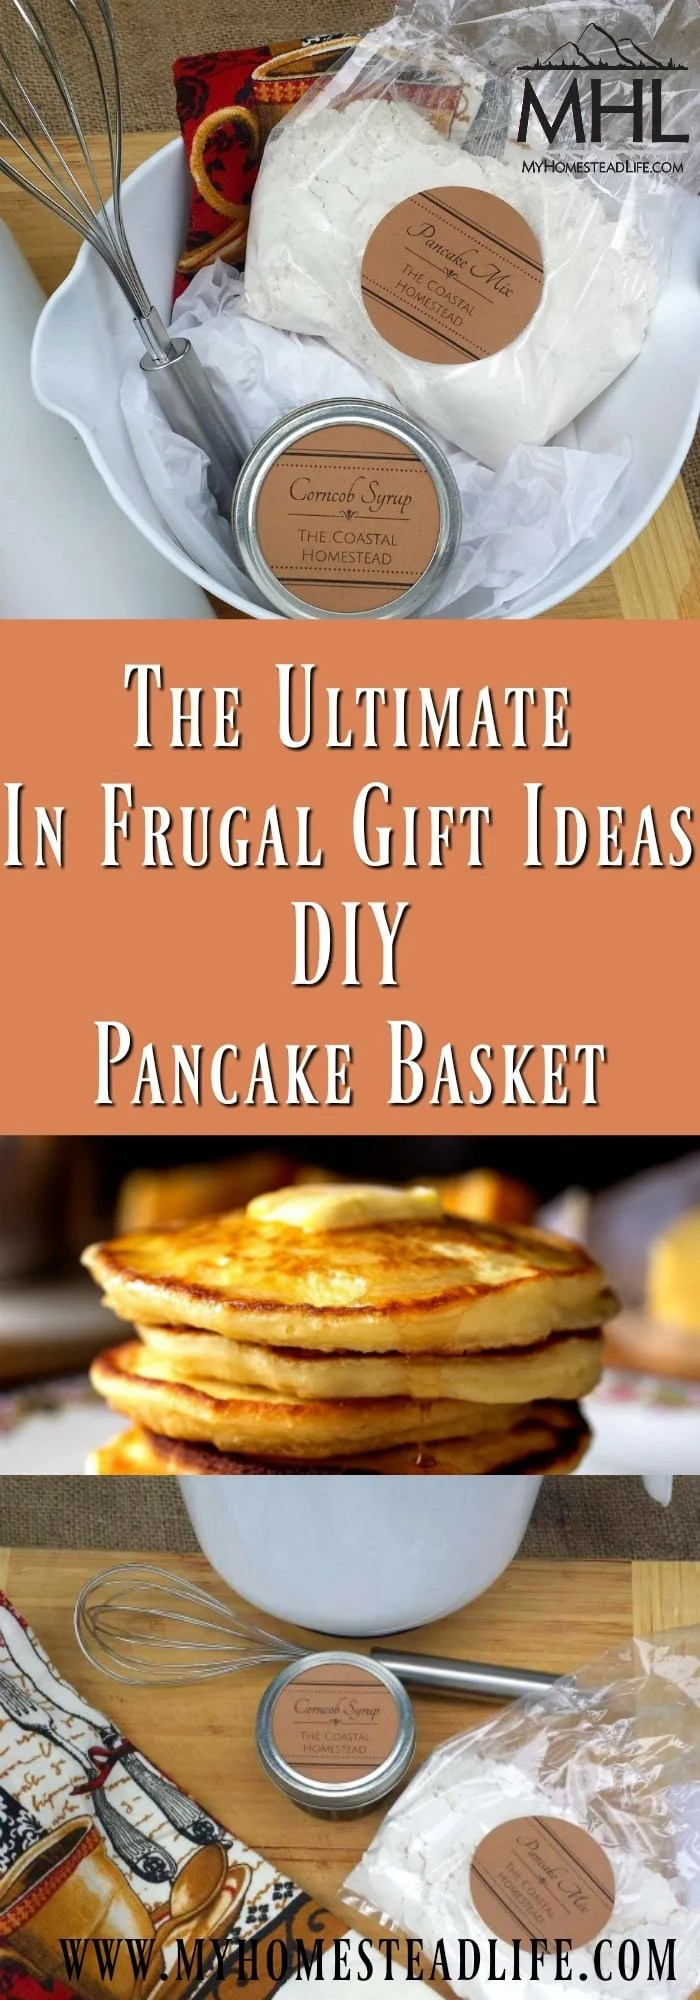 The Ultimate In Frugal Gift Ideas- DIY Pancake Basket